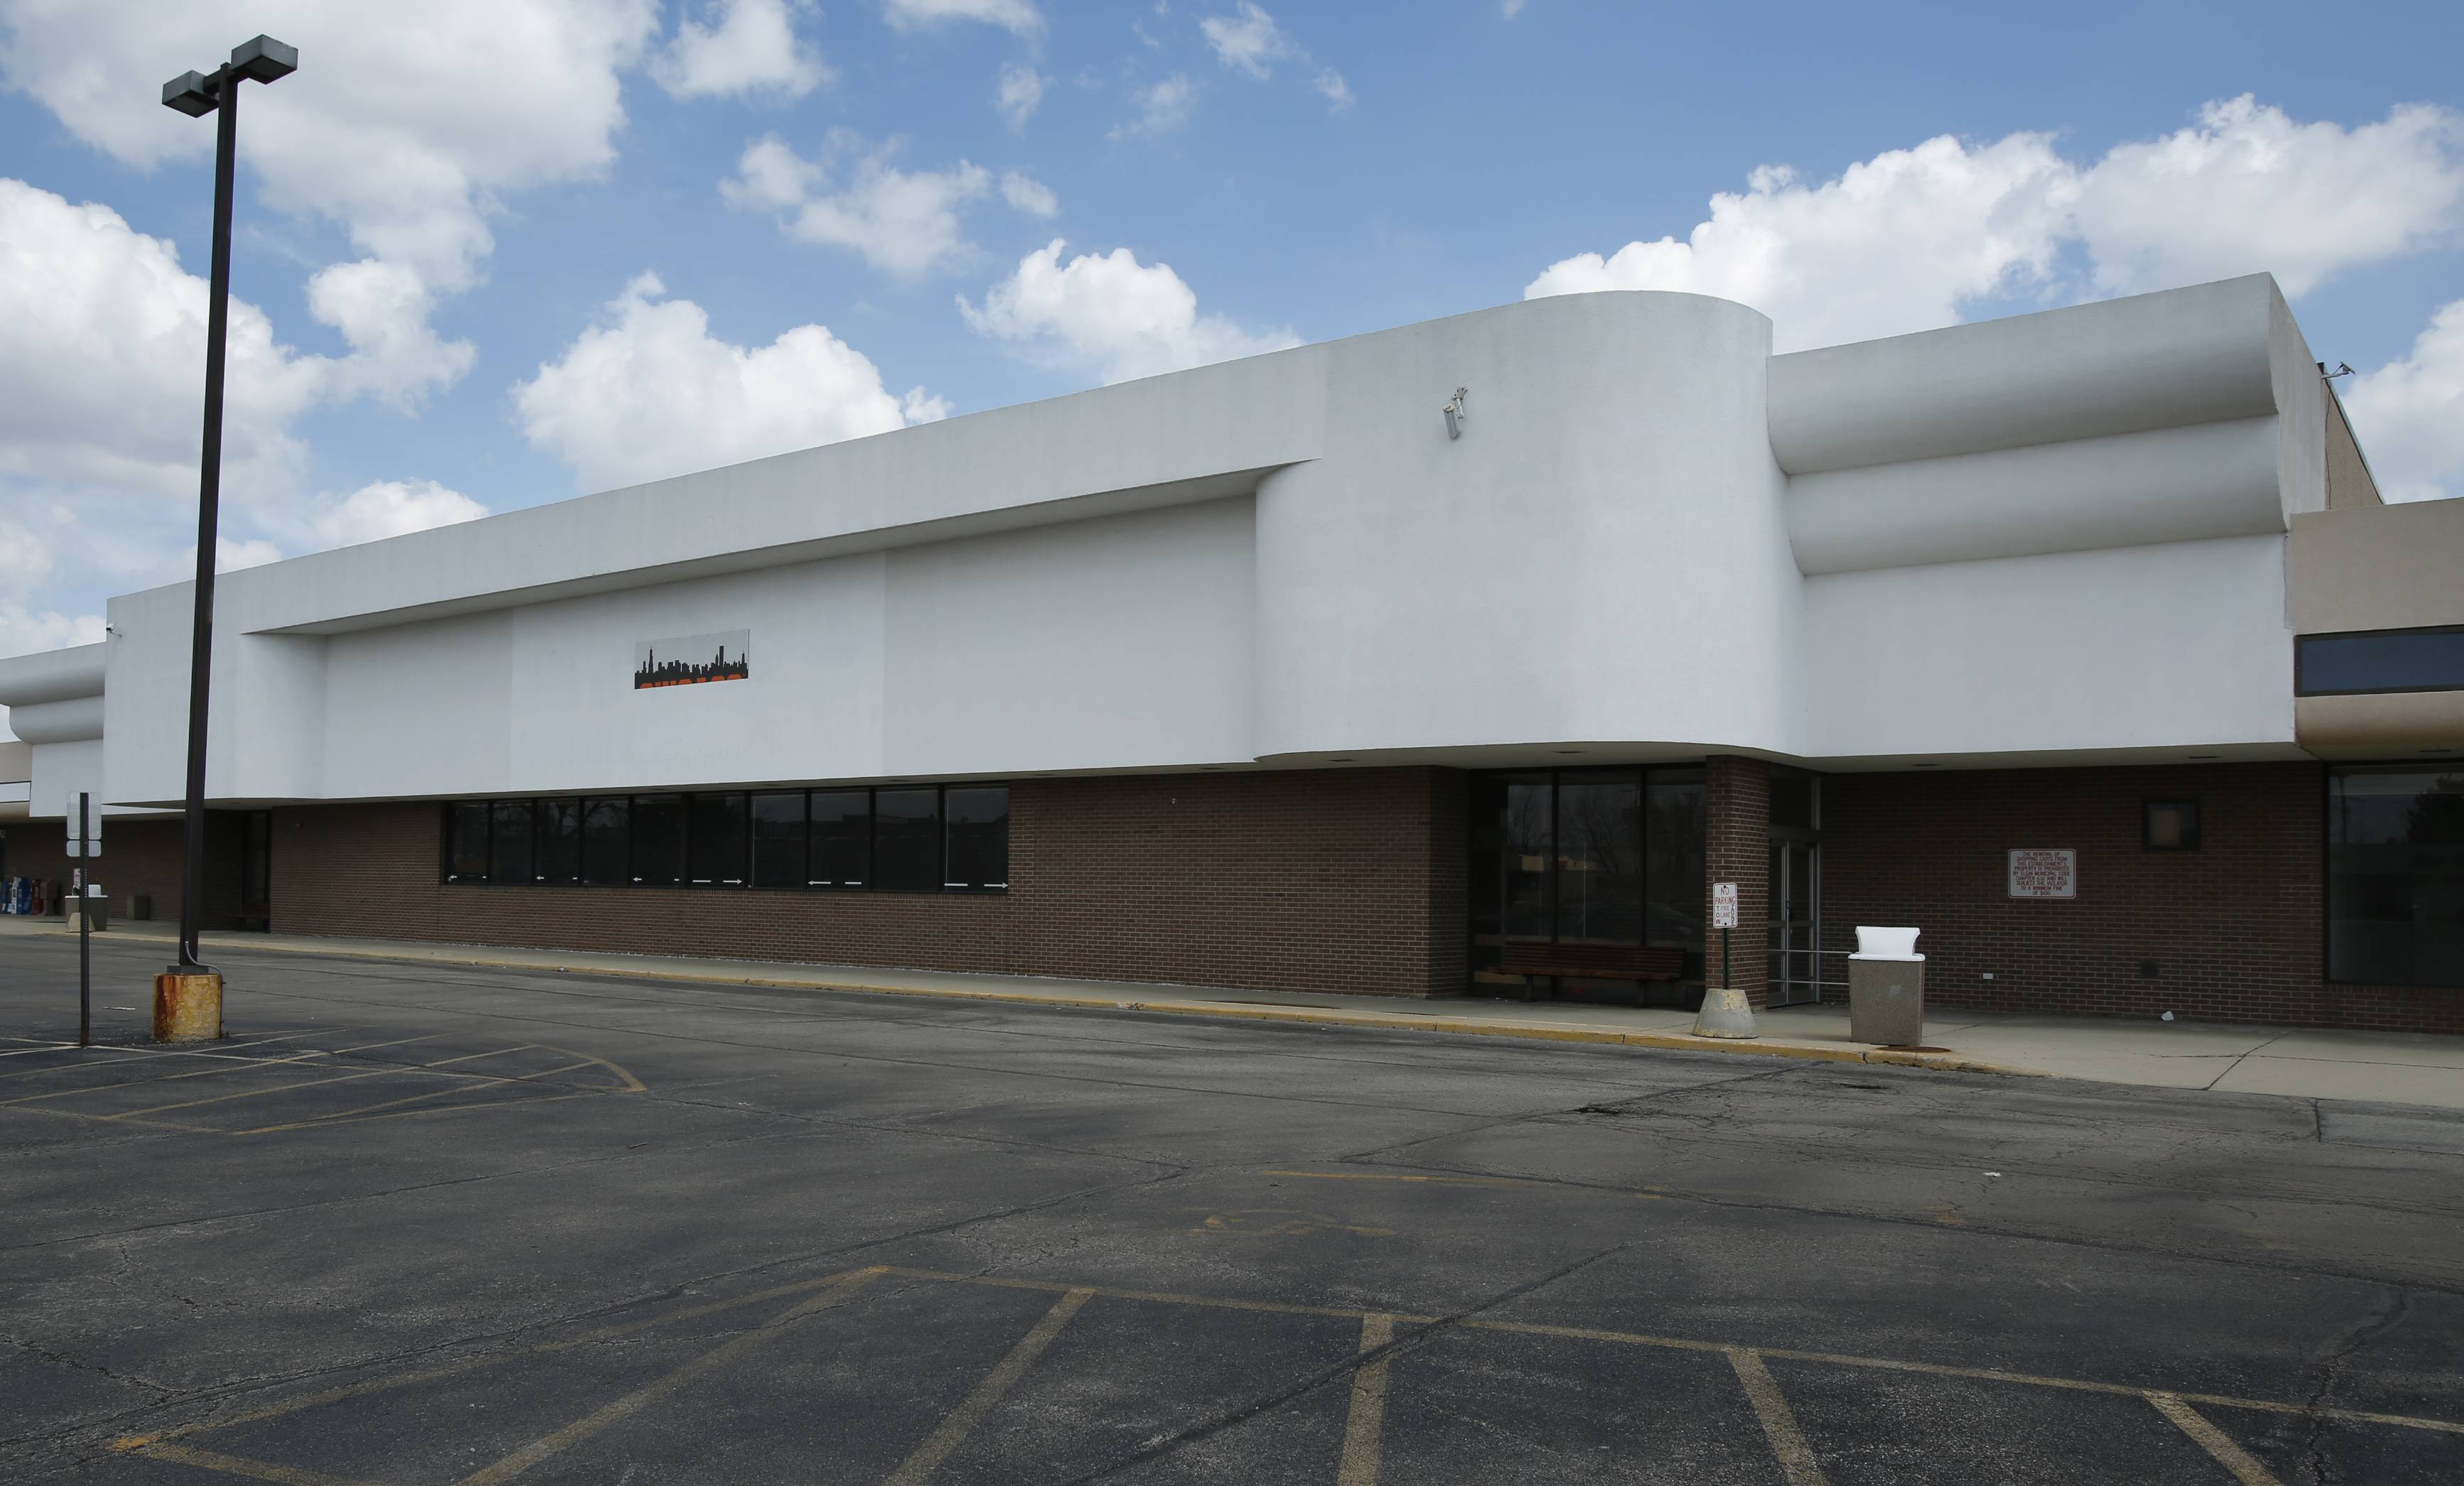 This former grocery store and home improvement store in Elgin is expected to open sometime this summer as a Butera Market grocery store.